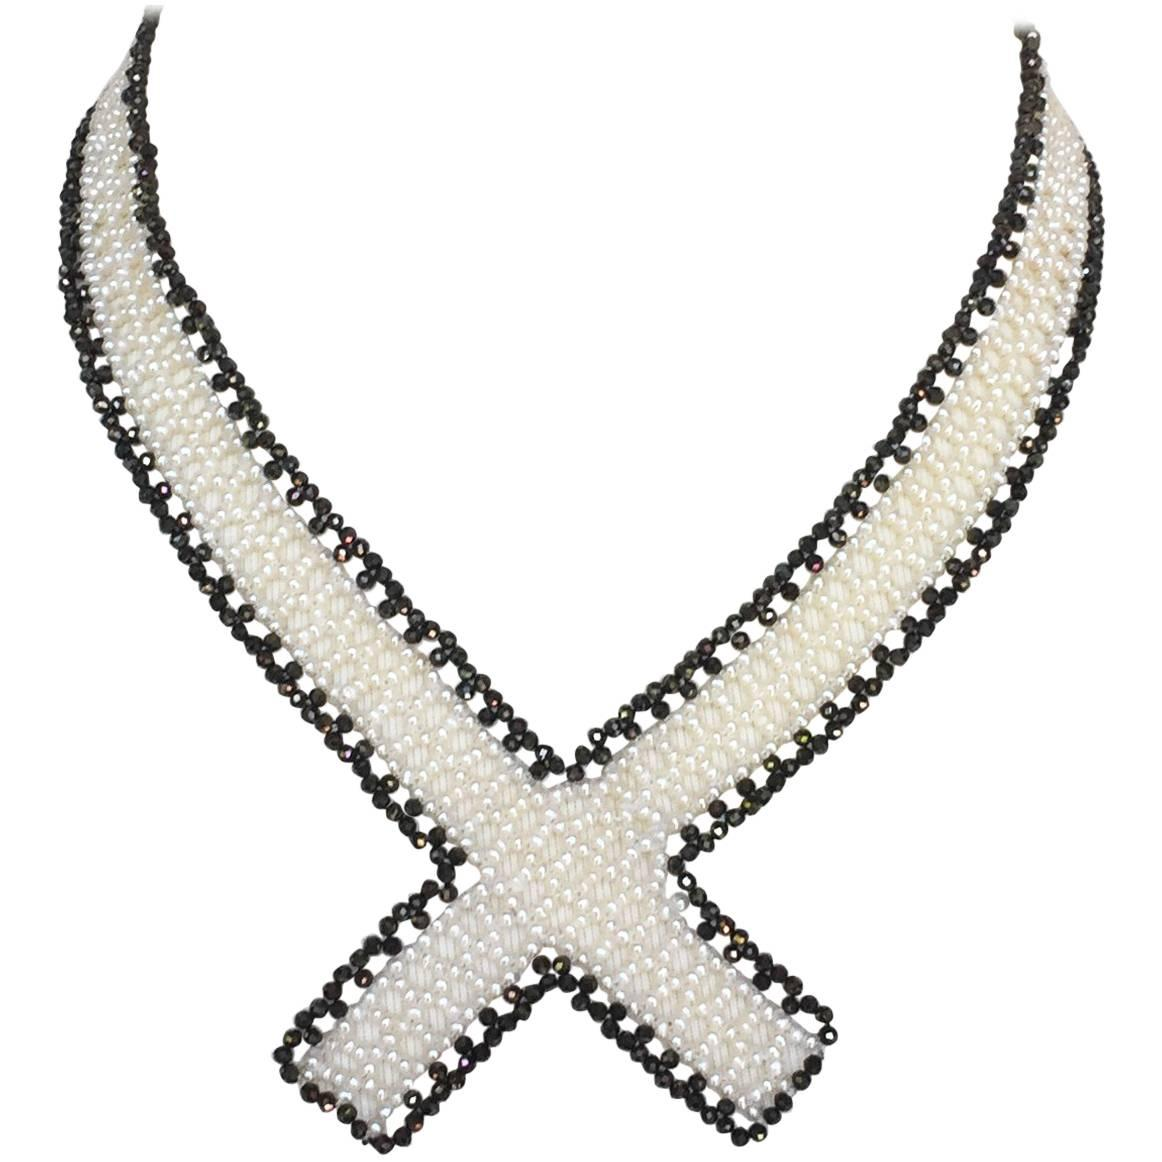 Marina J White Woven Pearl and Black Spinel Collar Necklace with Sliding Clasp